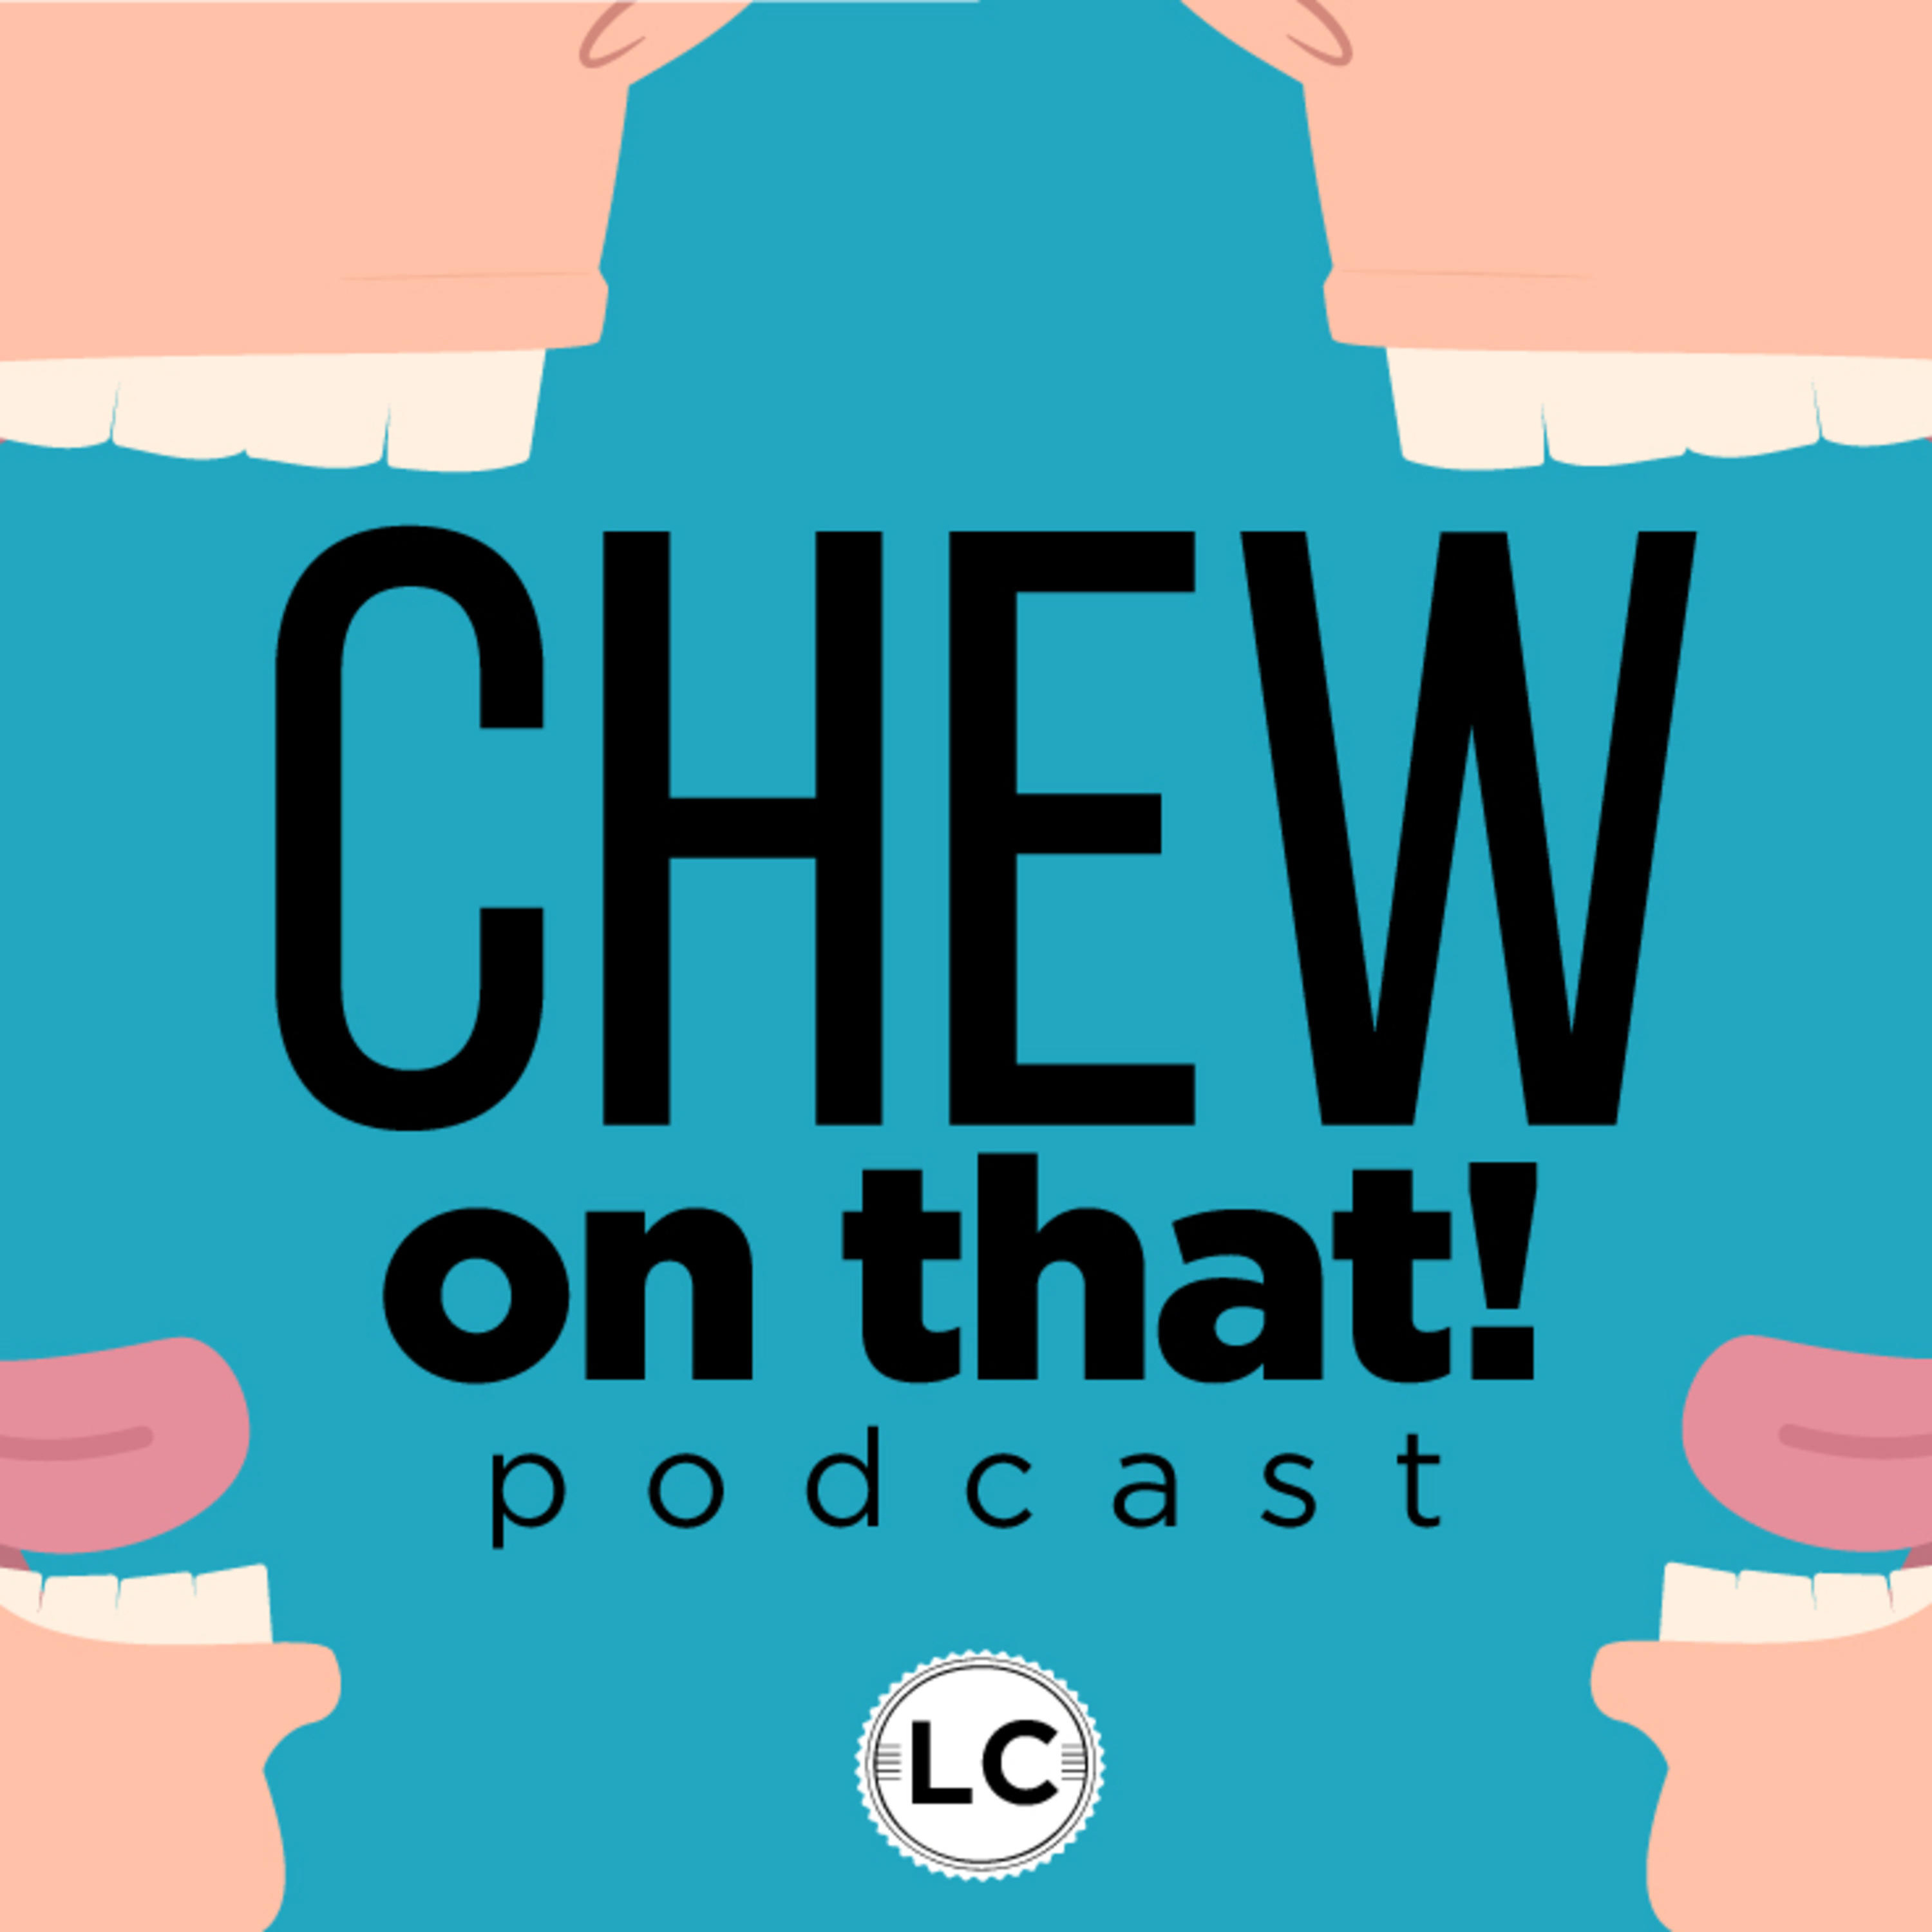 Artwork for podcast Chew on That!